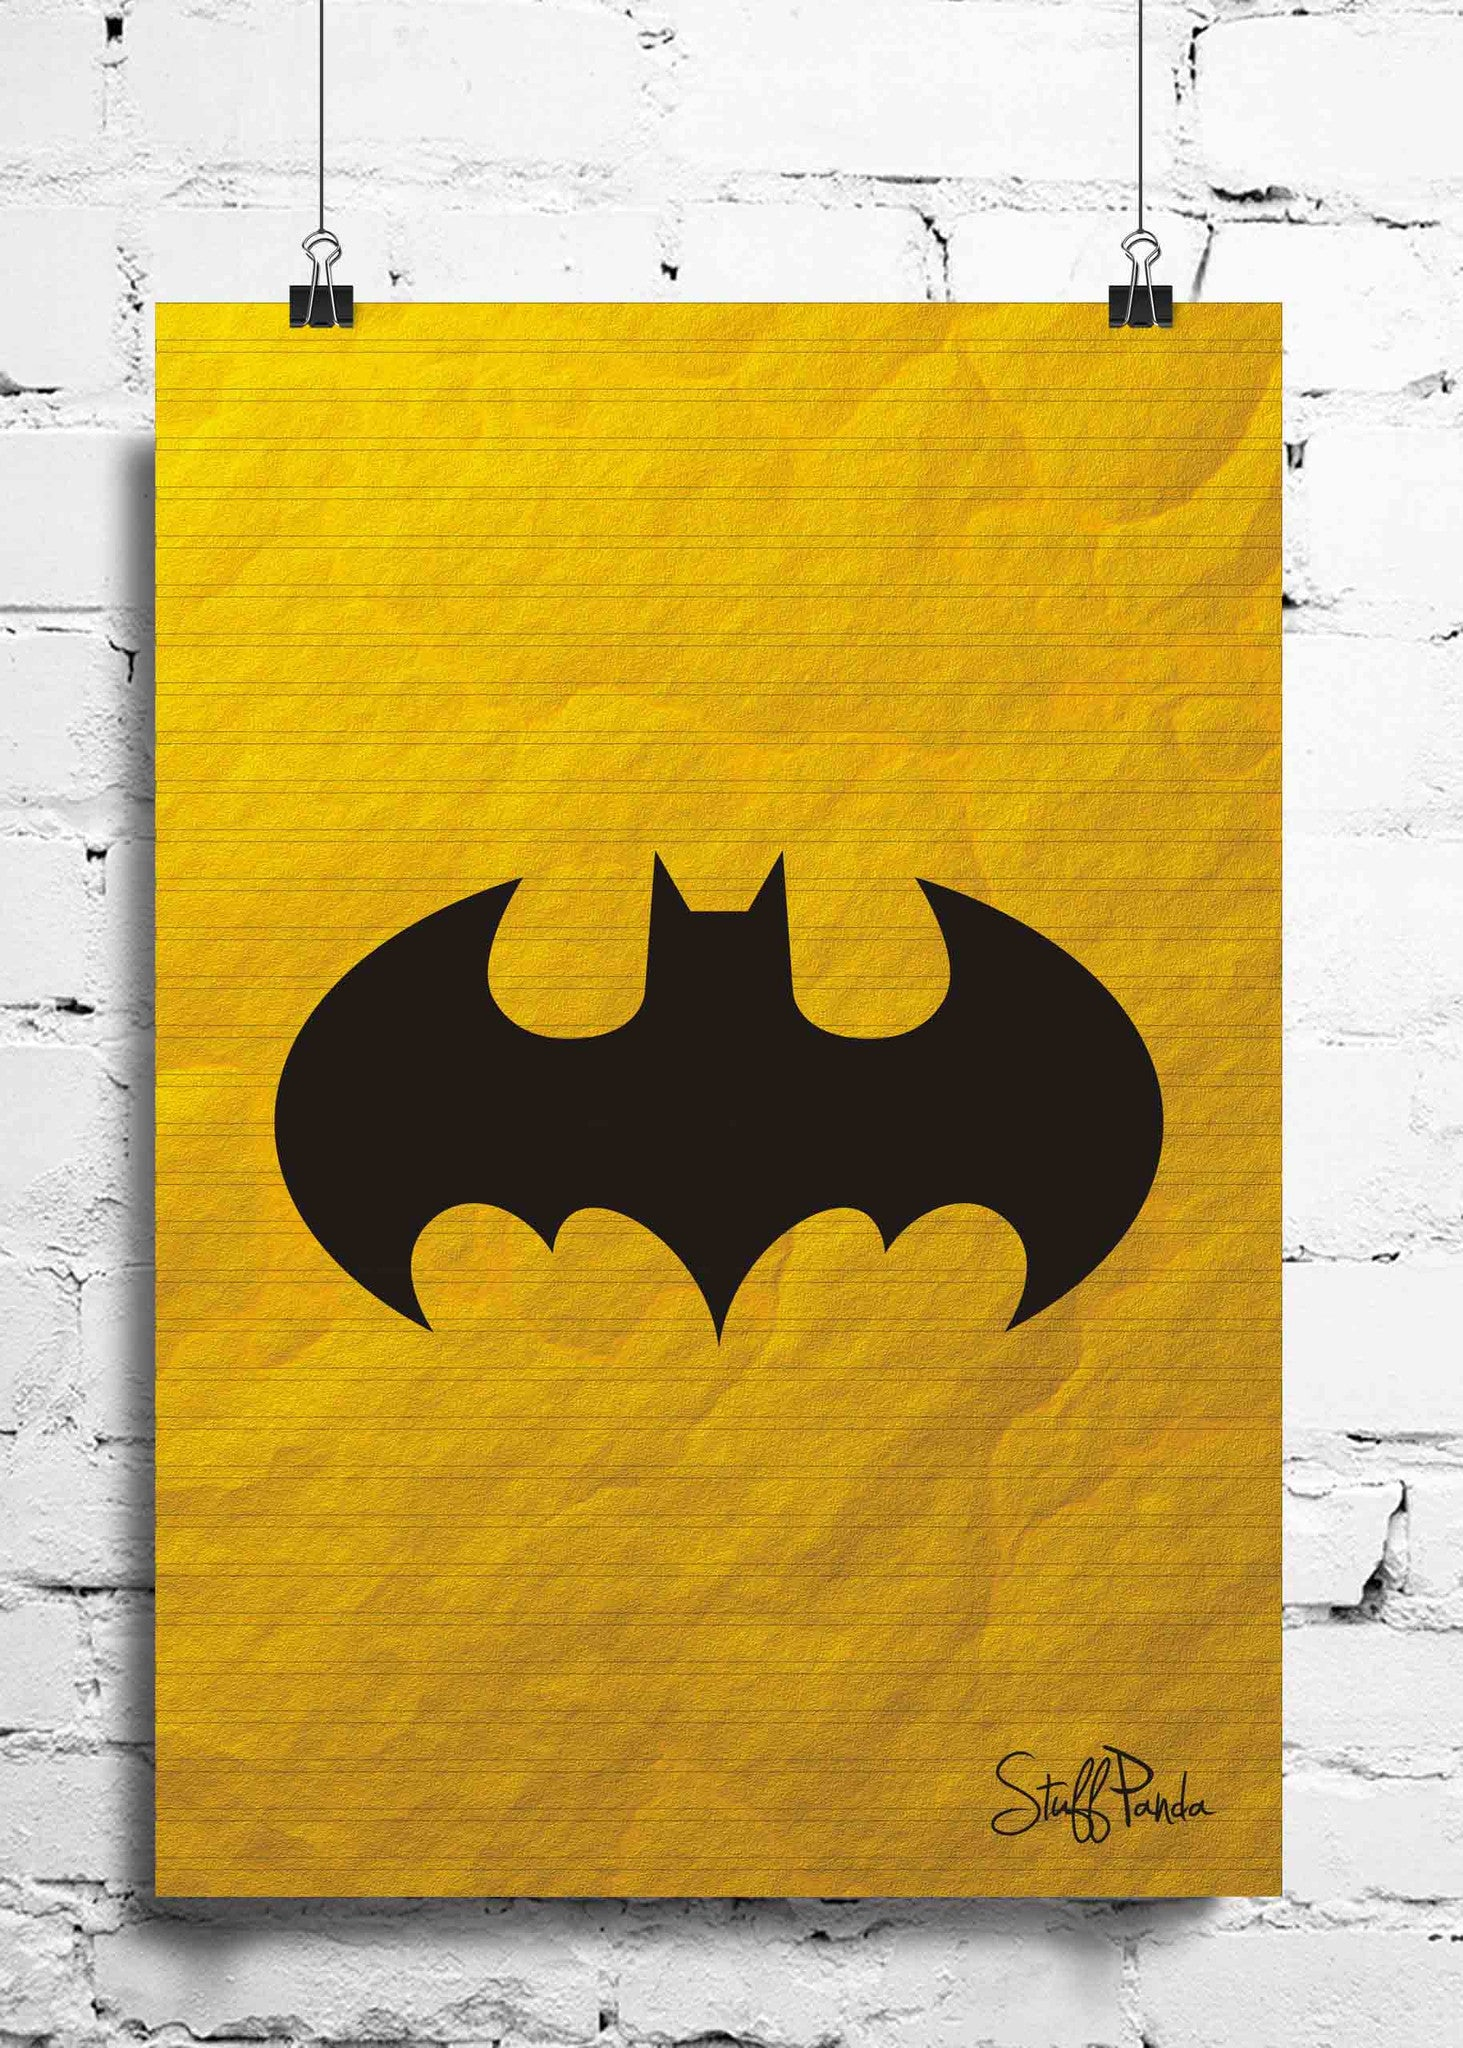 Cool Funky Abstract Batman shutter wall posters, art prints, stickers decals - stuffpanda - 1